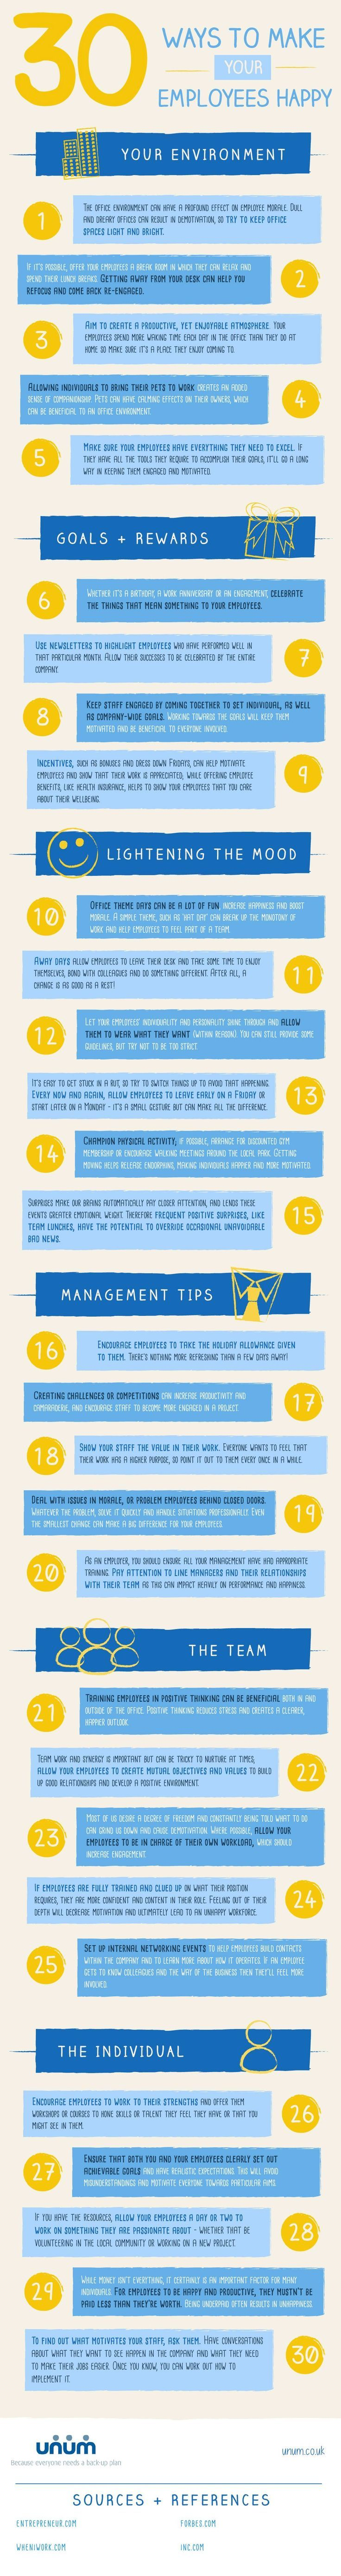 Thanks /unumuk/ for sharing these 30 simple ways to make your employers happier. Things like allowing individuals to bring pets to work, making sure they have the right tools, offering incentives like bonuses and dress down Fridays, and more. See more in this infographic and on our other Pinterest boards now!